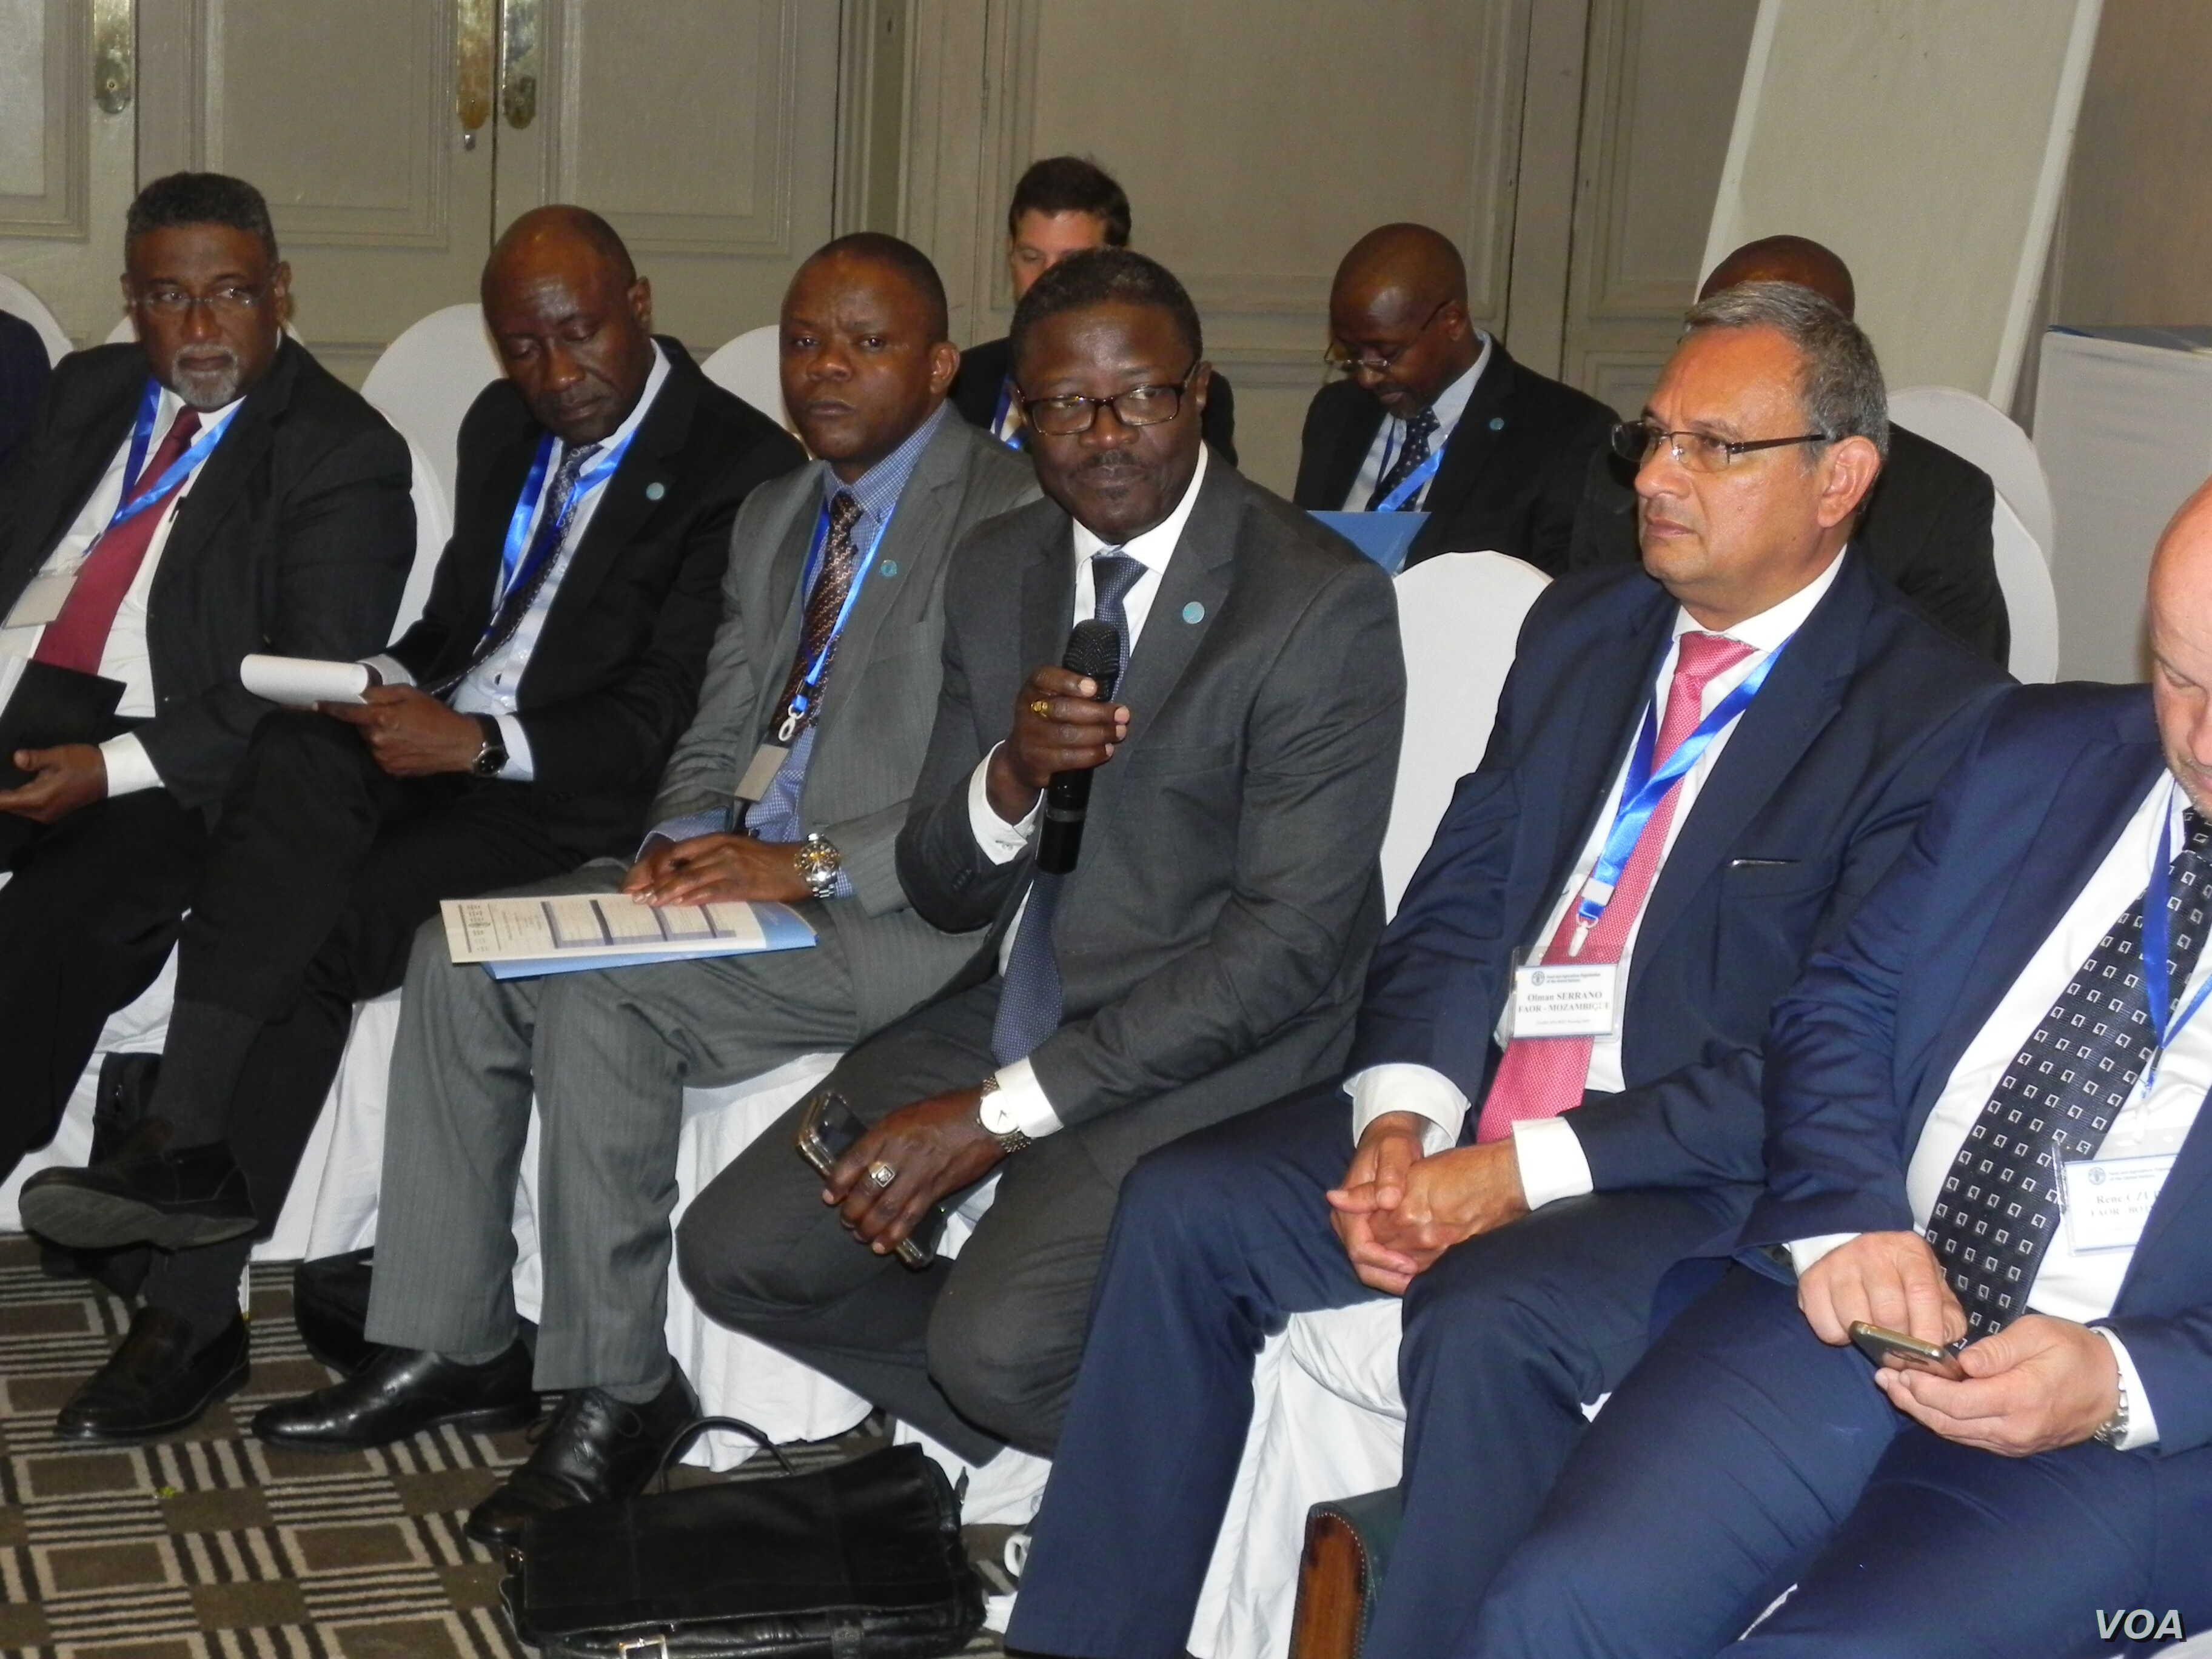 Patrick Kormawa the coordinator for the FAO in Southern Africa addressing a regional meeting in Harare, Zimbabwe, Sept. 5, 2018.